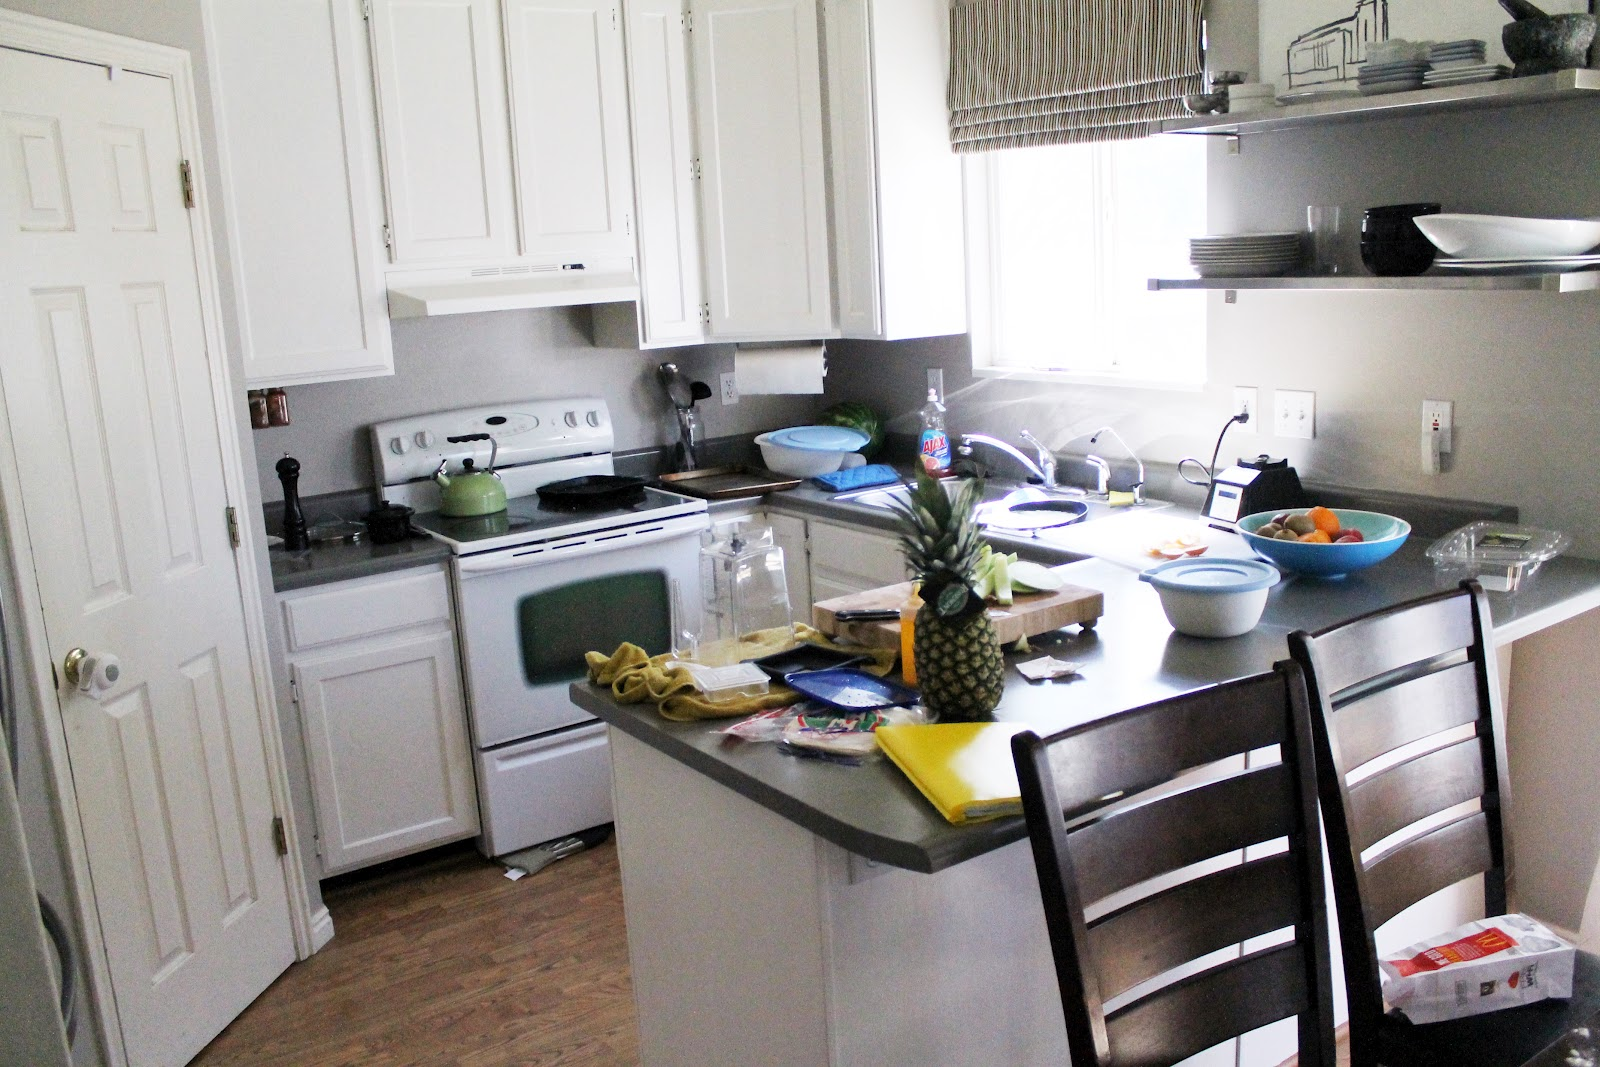 Messy Construction Kitchens : Truth tuesday editing photos messy kitchens and quot no one